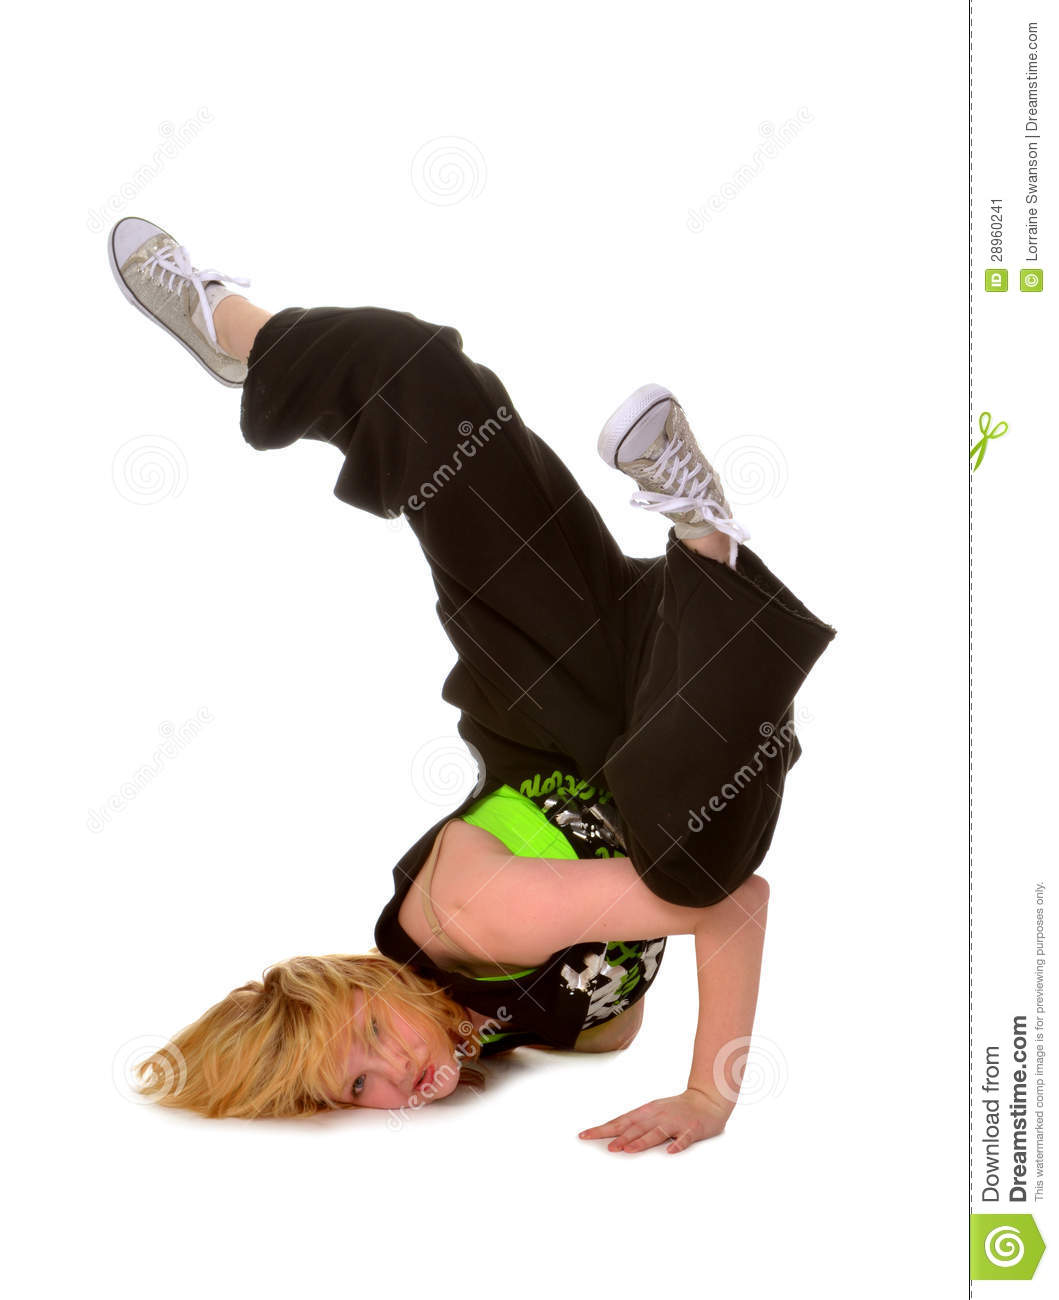 Assez Hip Hop Or Break Dancing Girl Stock Image - Image: 28960241 SU23